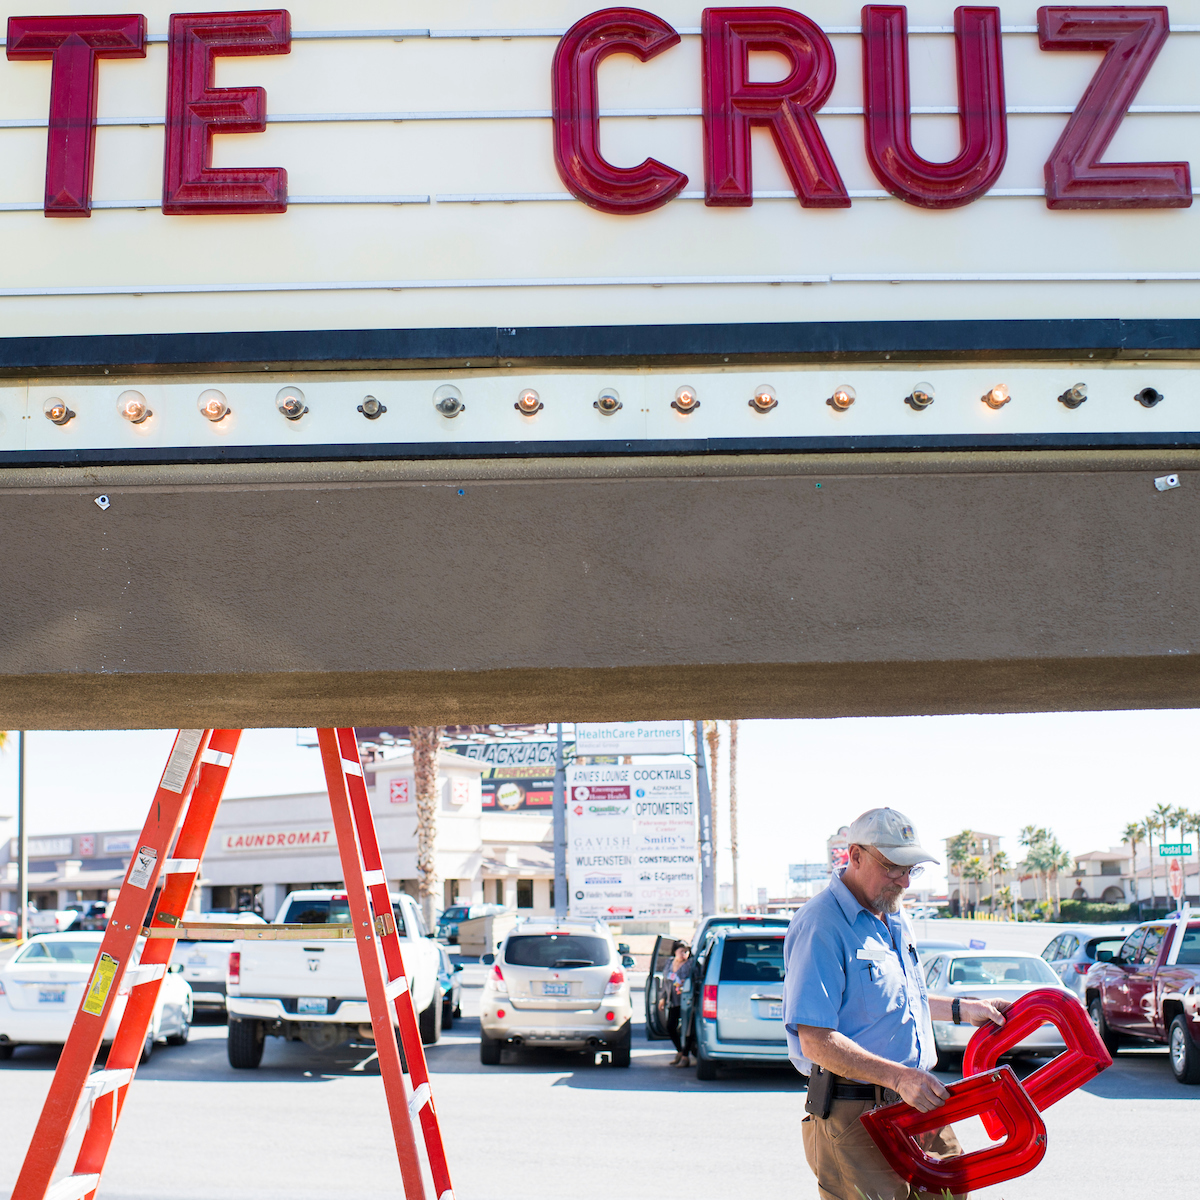 "6. Feb. 21: T.J. Vanderford, from the Pahrump Best Western maintenance crew, carries ""D""s to the hotel's sign at the site of a campaign rally for Texas Sen. <a class=""memberLink"" title=""Click to view member info in a new window"" href=""http://data.rollcall.com/members/44748?rel=memberLink"" target=""_blank"">Ted Cruz</a> in Pahrump, Nev. The sign read ""TE CRUZ"" until they could find a ""D"" back in the office. The Nevada GOP caucus took place two days later. (Bill Clark/CQ Roll Call file photo)"